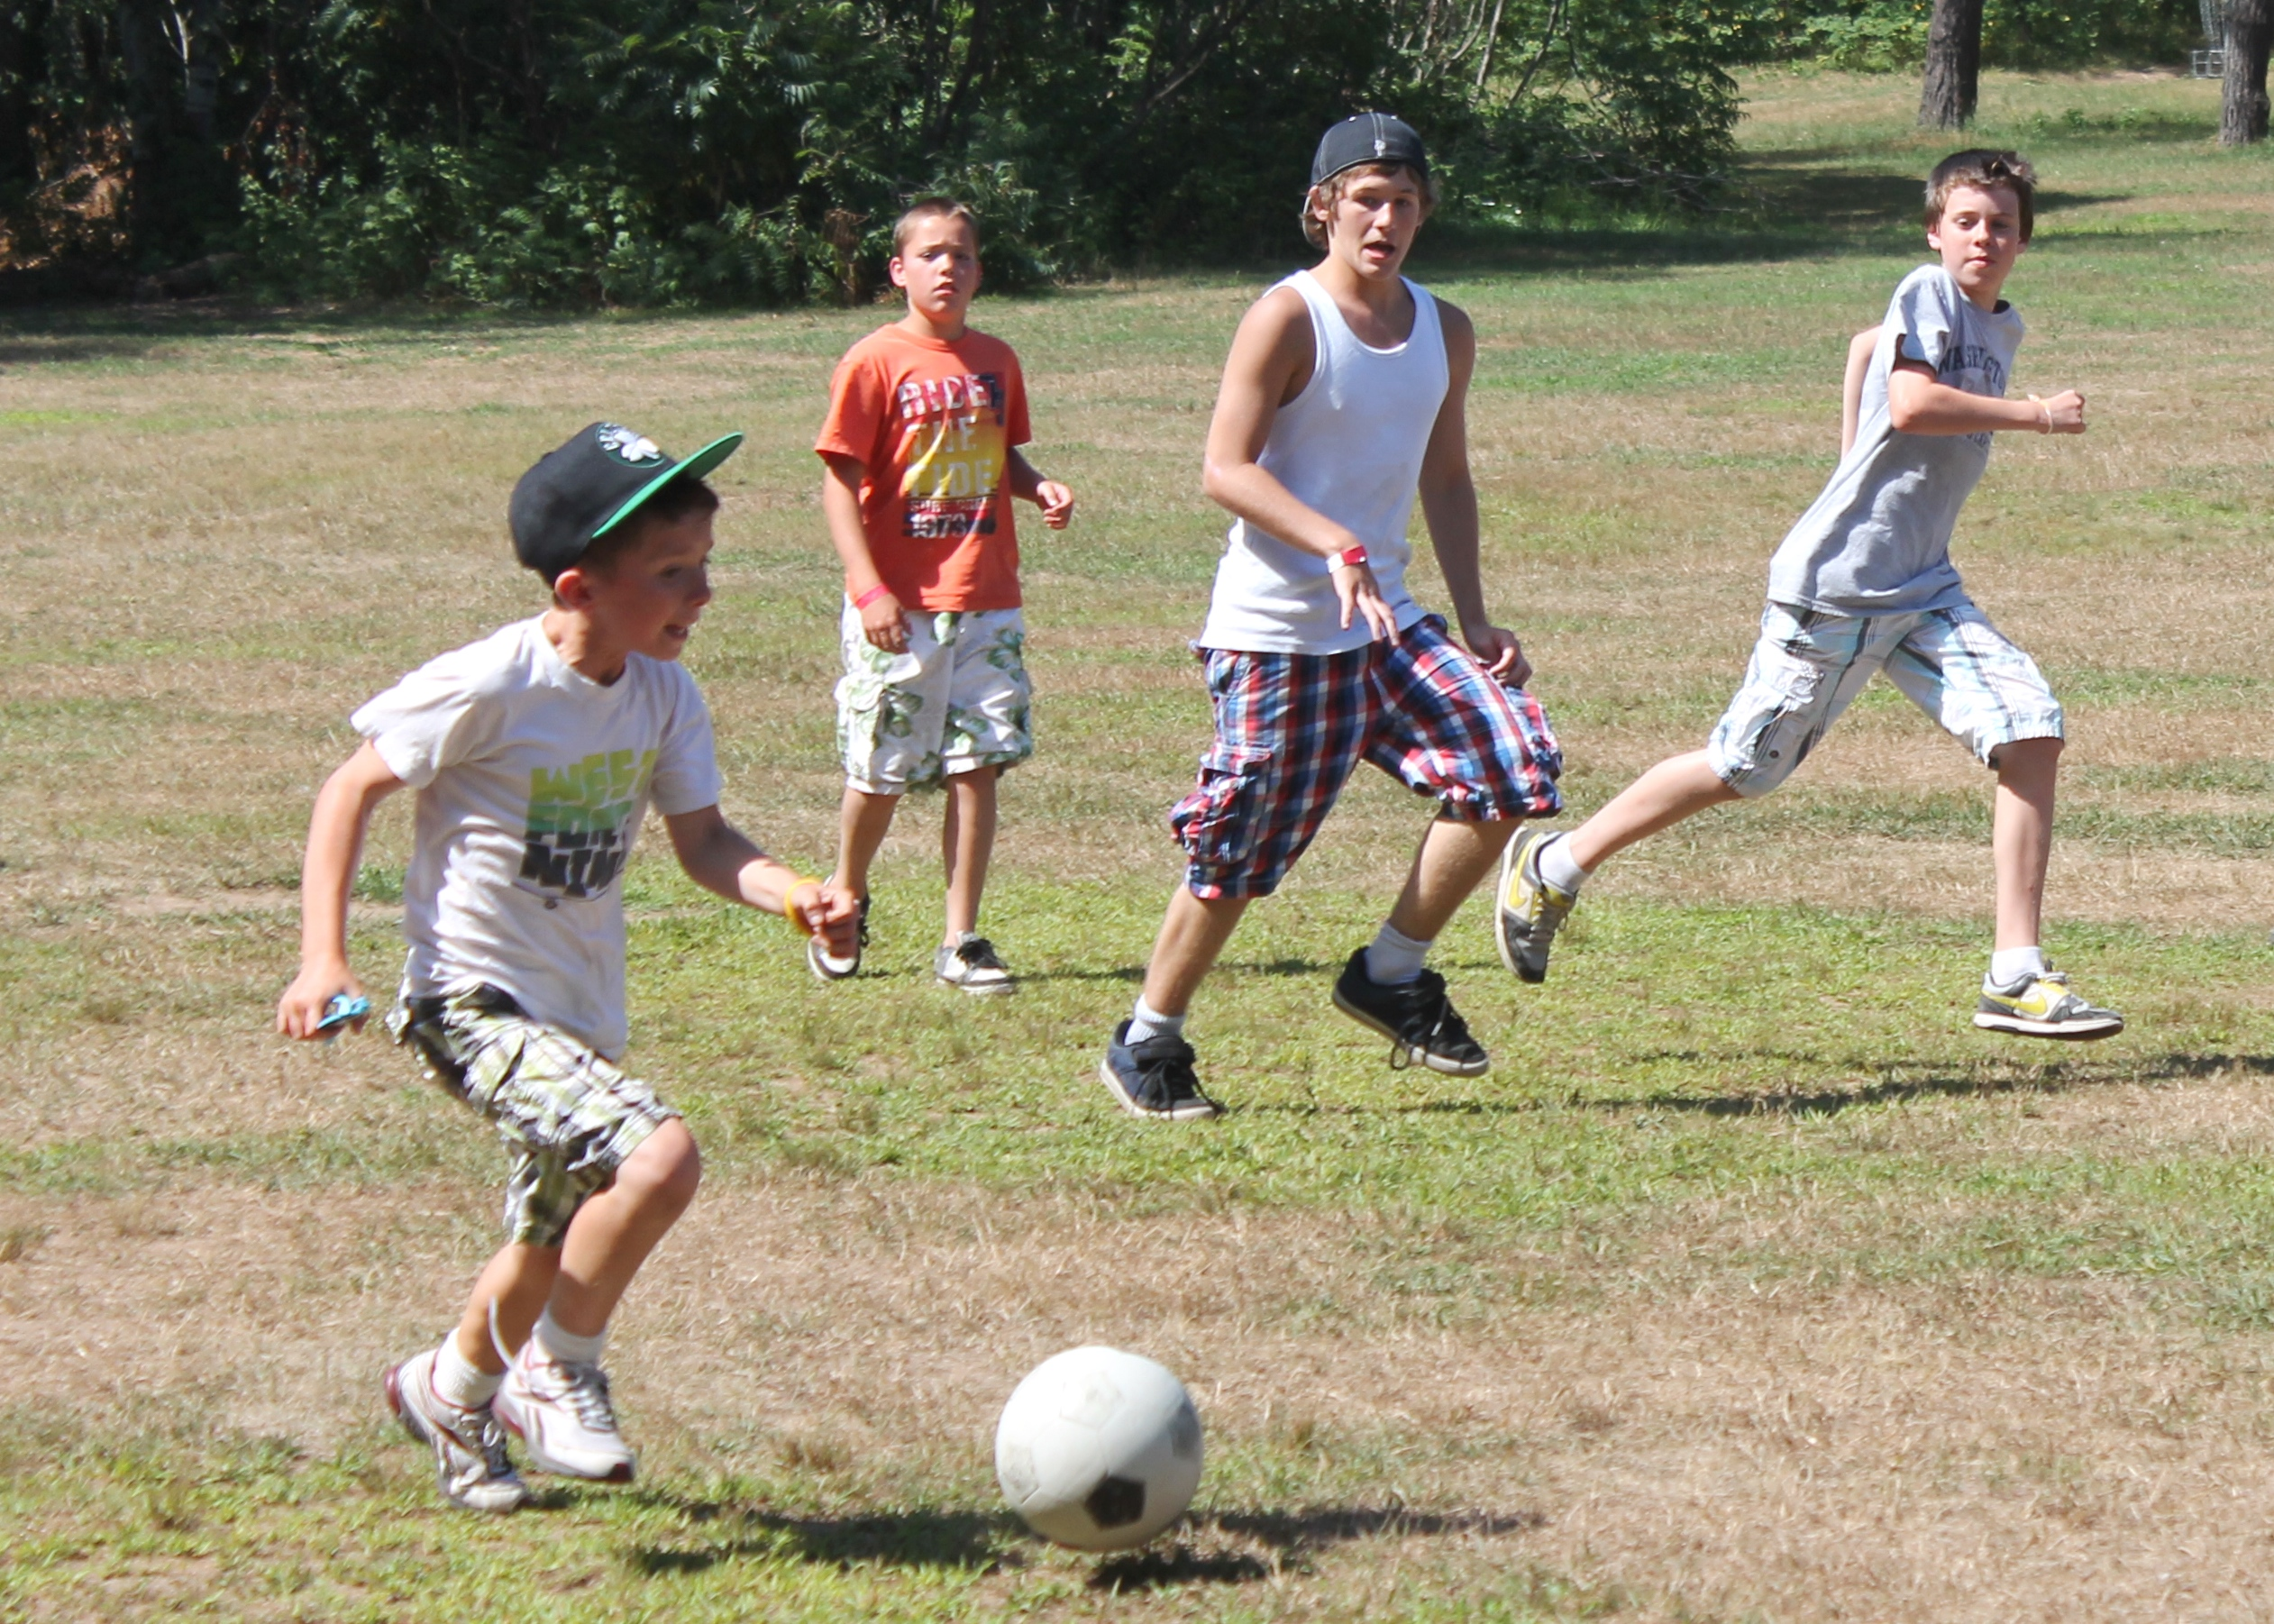 Campers playing soccer outside at christian adventure summer camp in Haliburton, Ontario